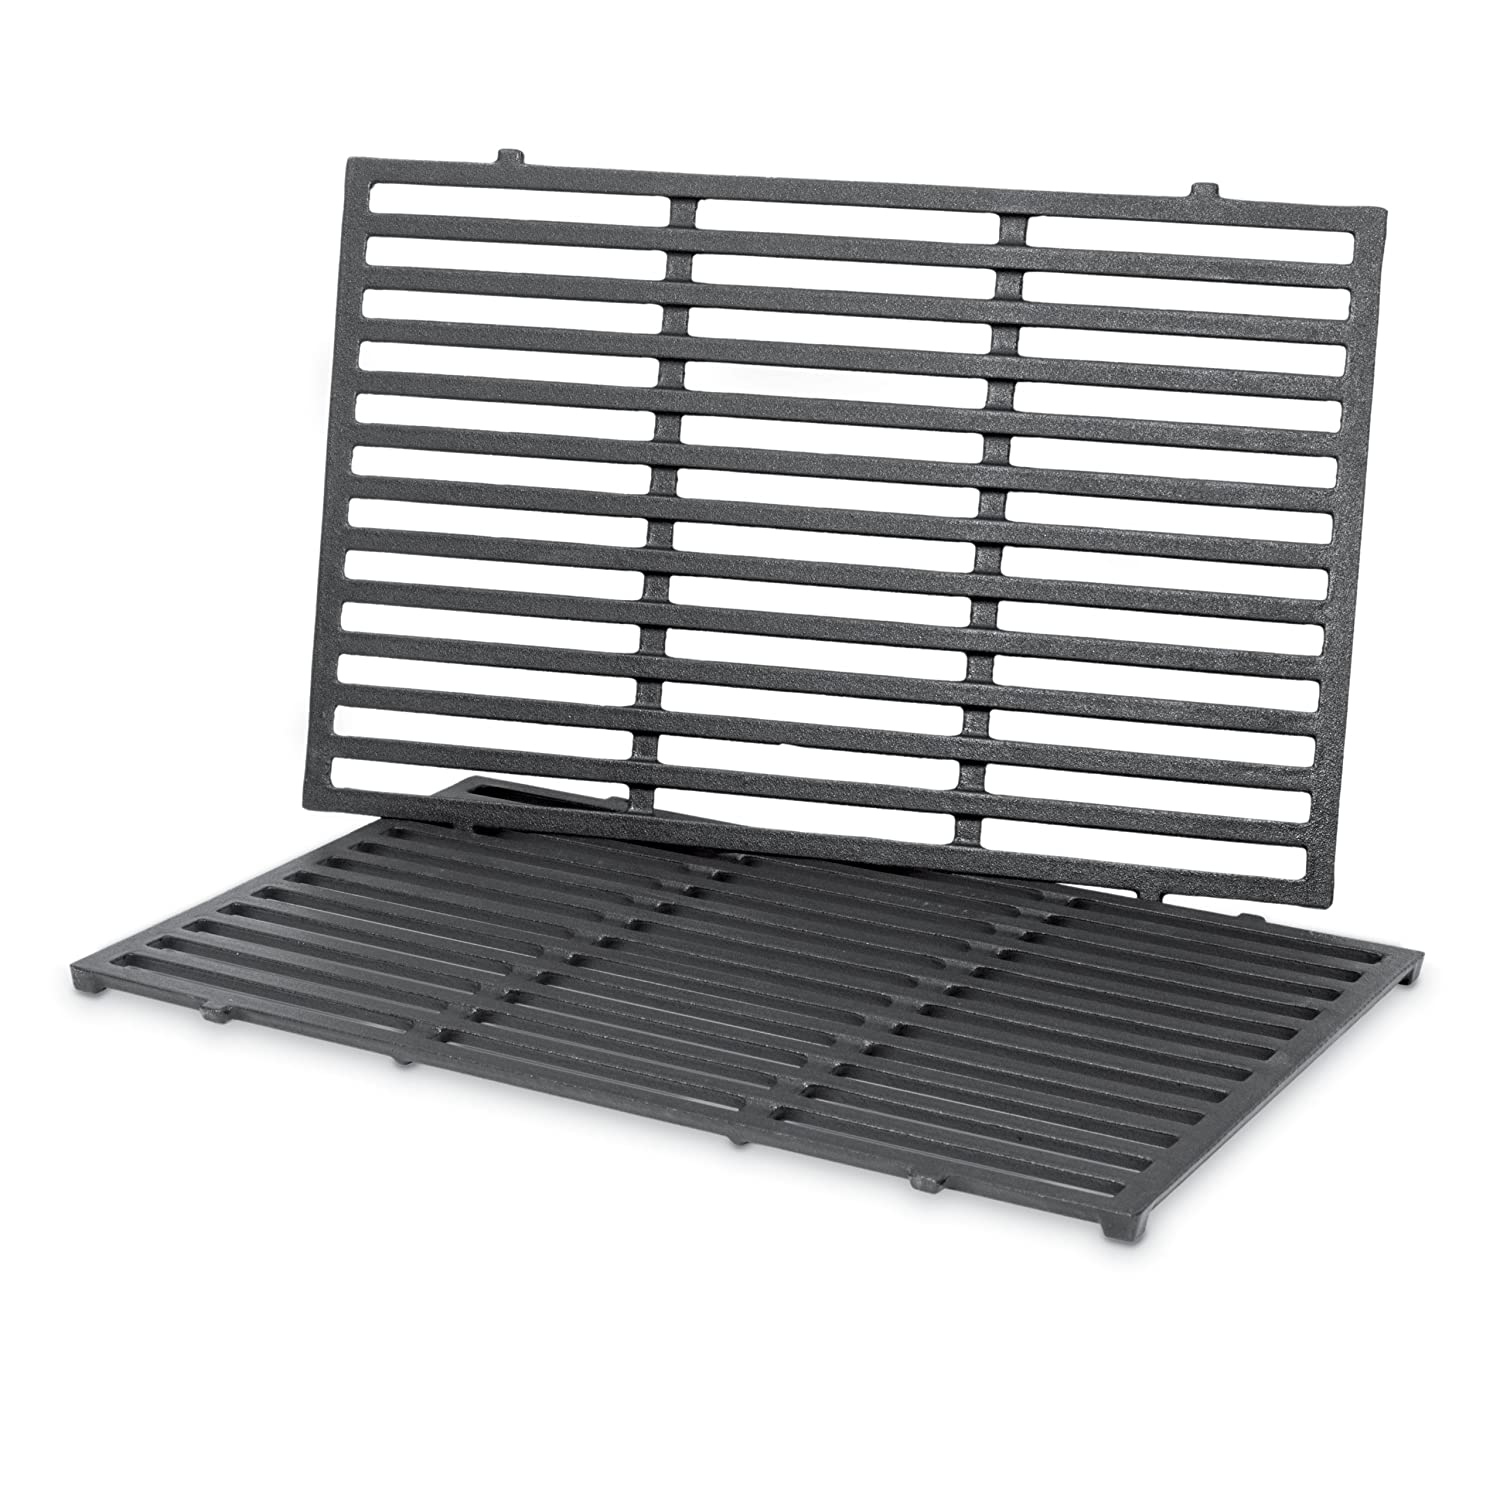 Weber 7524 Porcelain-Enameled Cast-Iron Cooking Grates (19.5 x 12.9 x 0.5)